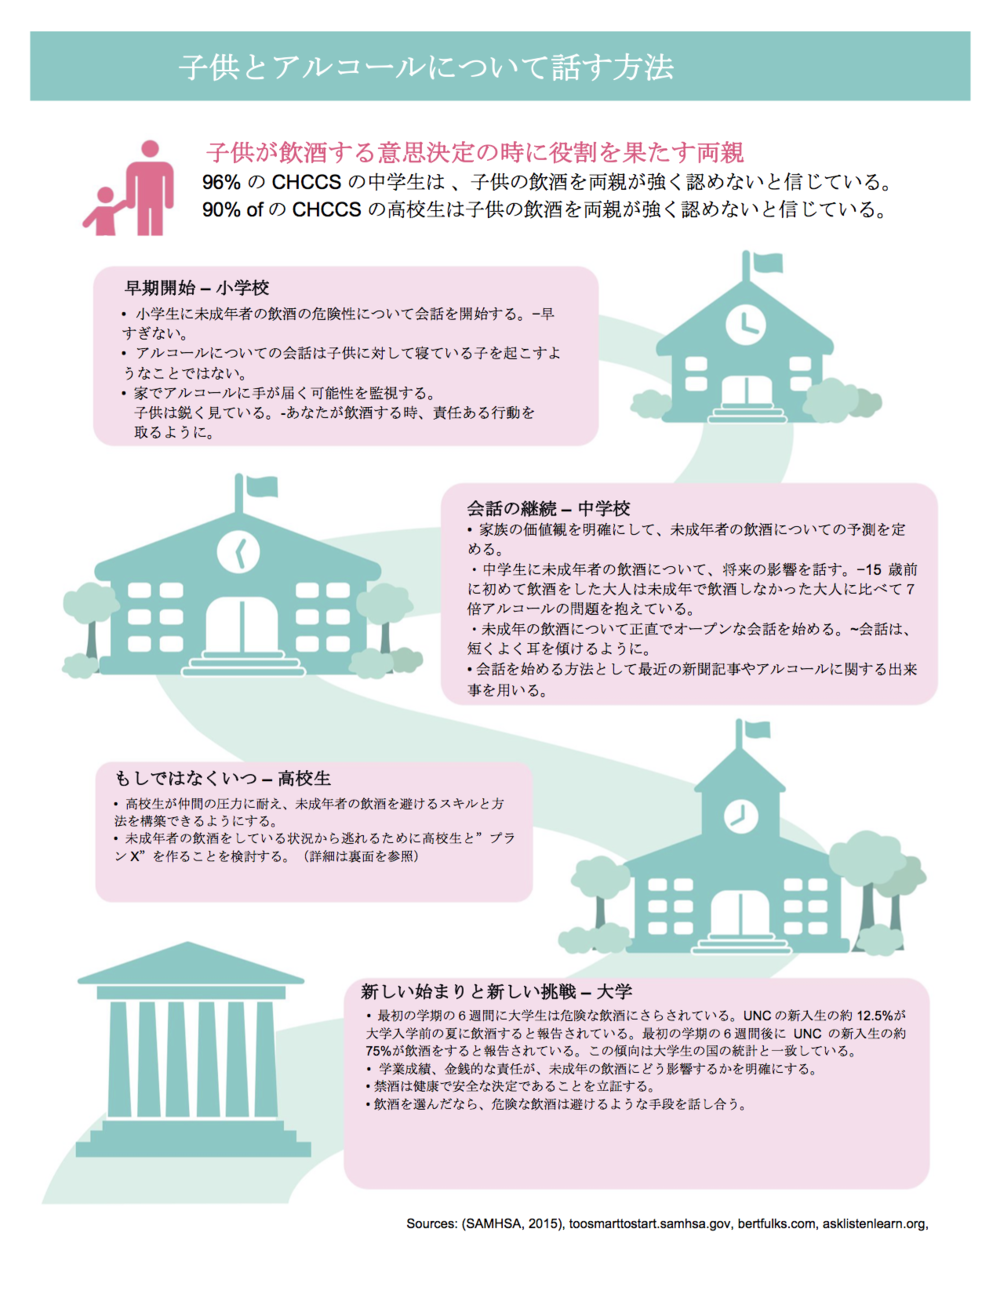 Japn-How Fact Sheet.png